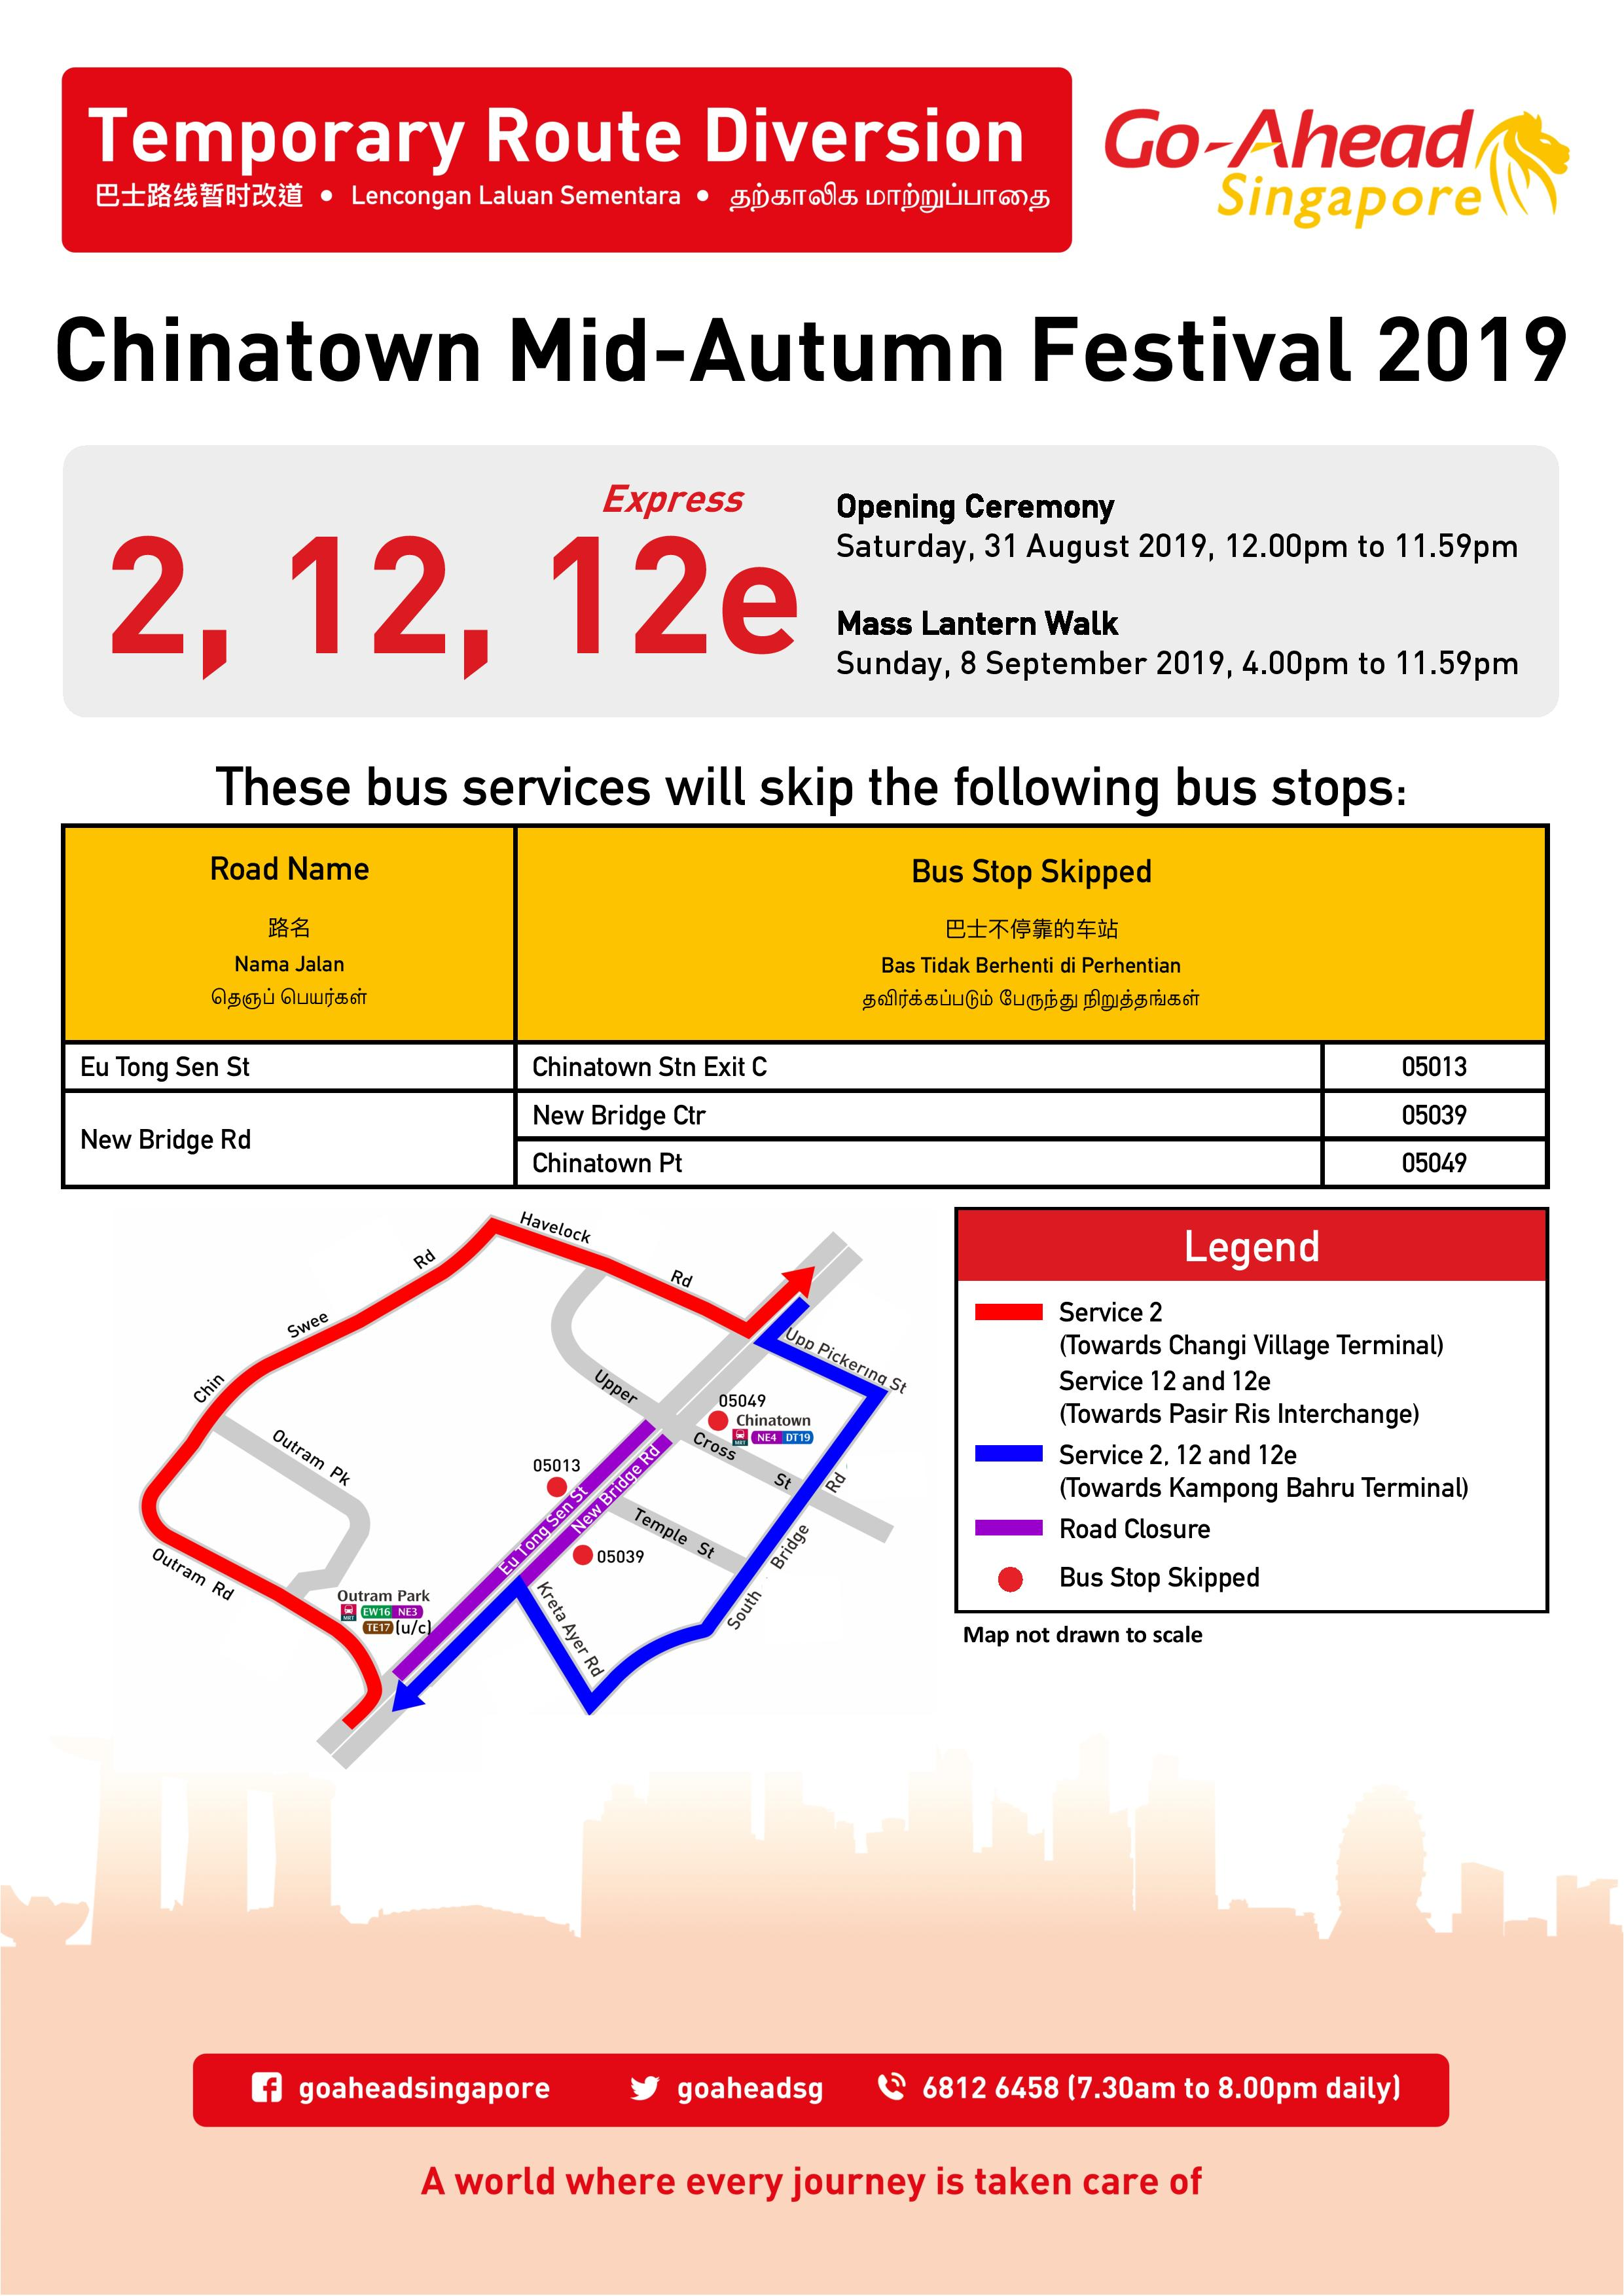 Go-Ahead Singapore Poster for Chinatown Mid-Autumn Festival 2019 (Opening Ceremony & Mass Lantern Walk)